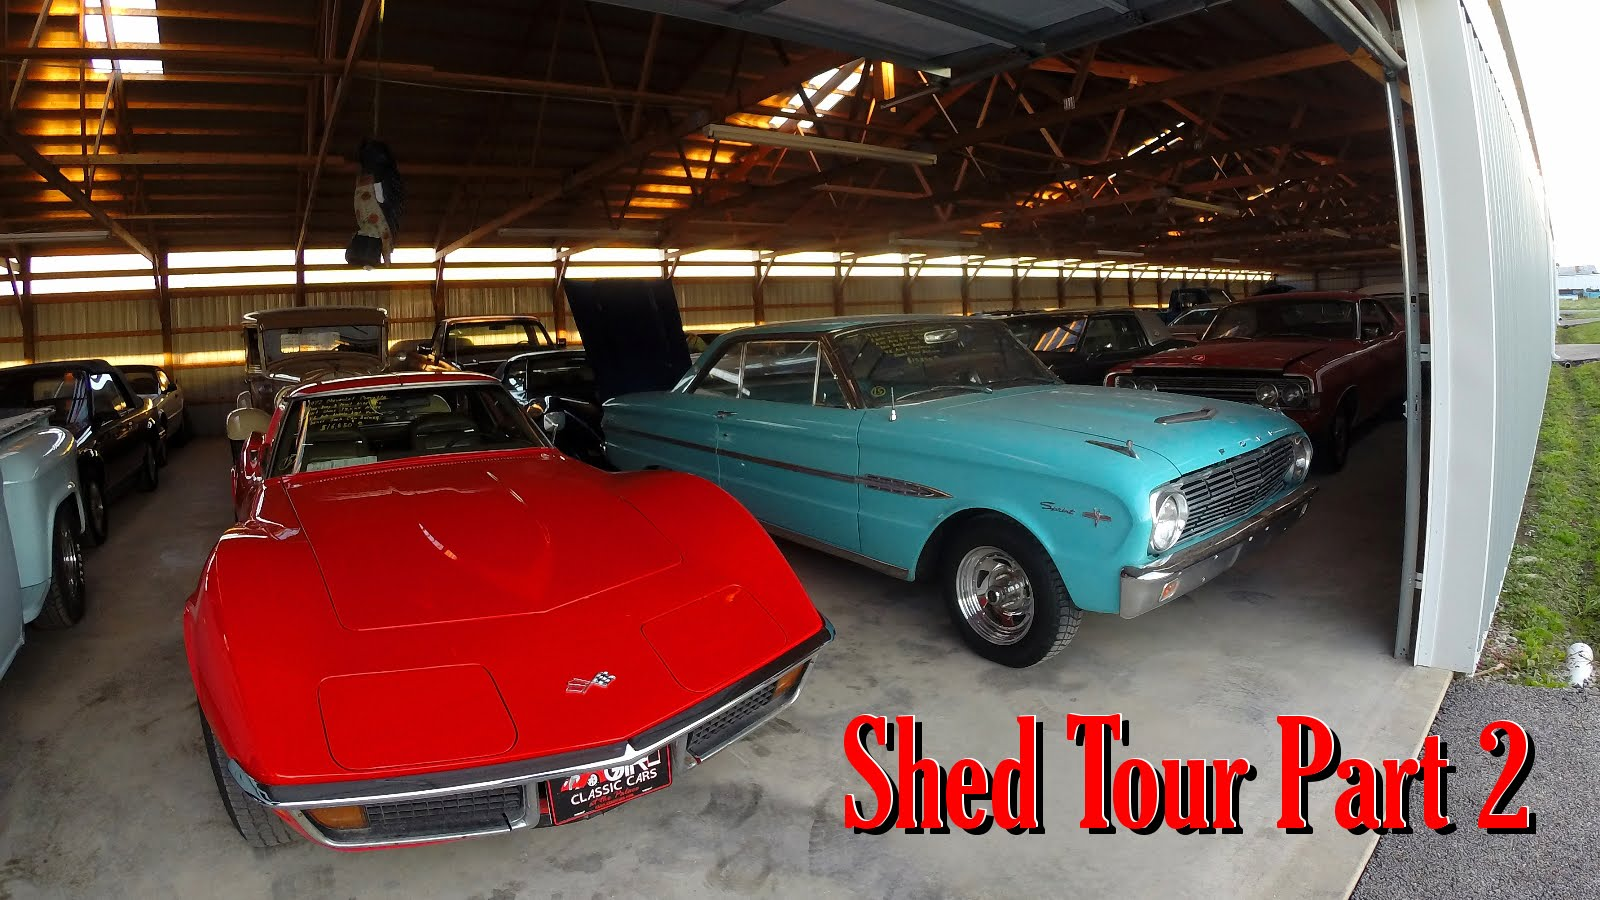 Check Out The Incredible Classic Cars All Under The Roof Of The ...